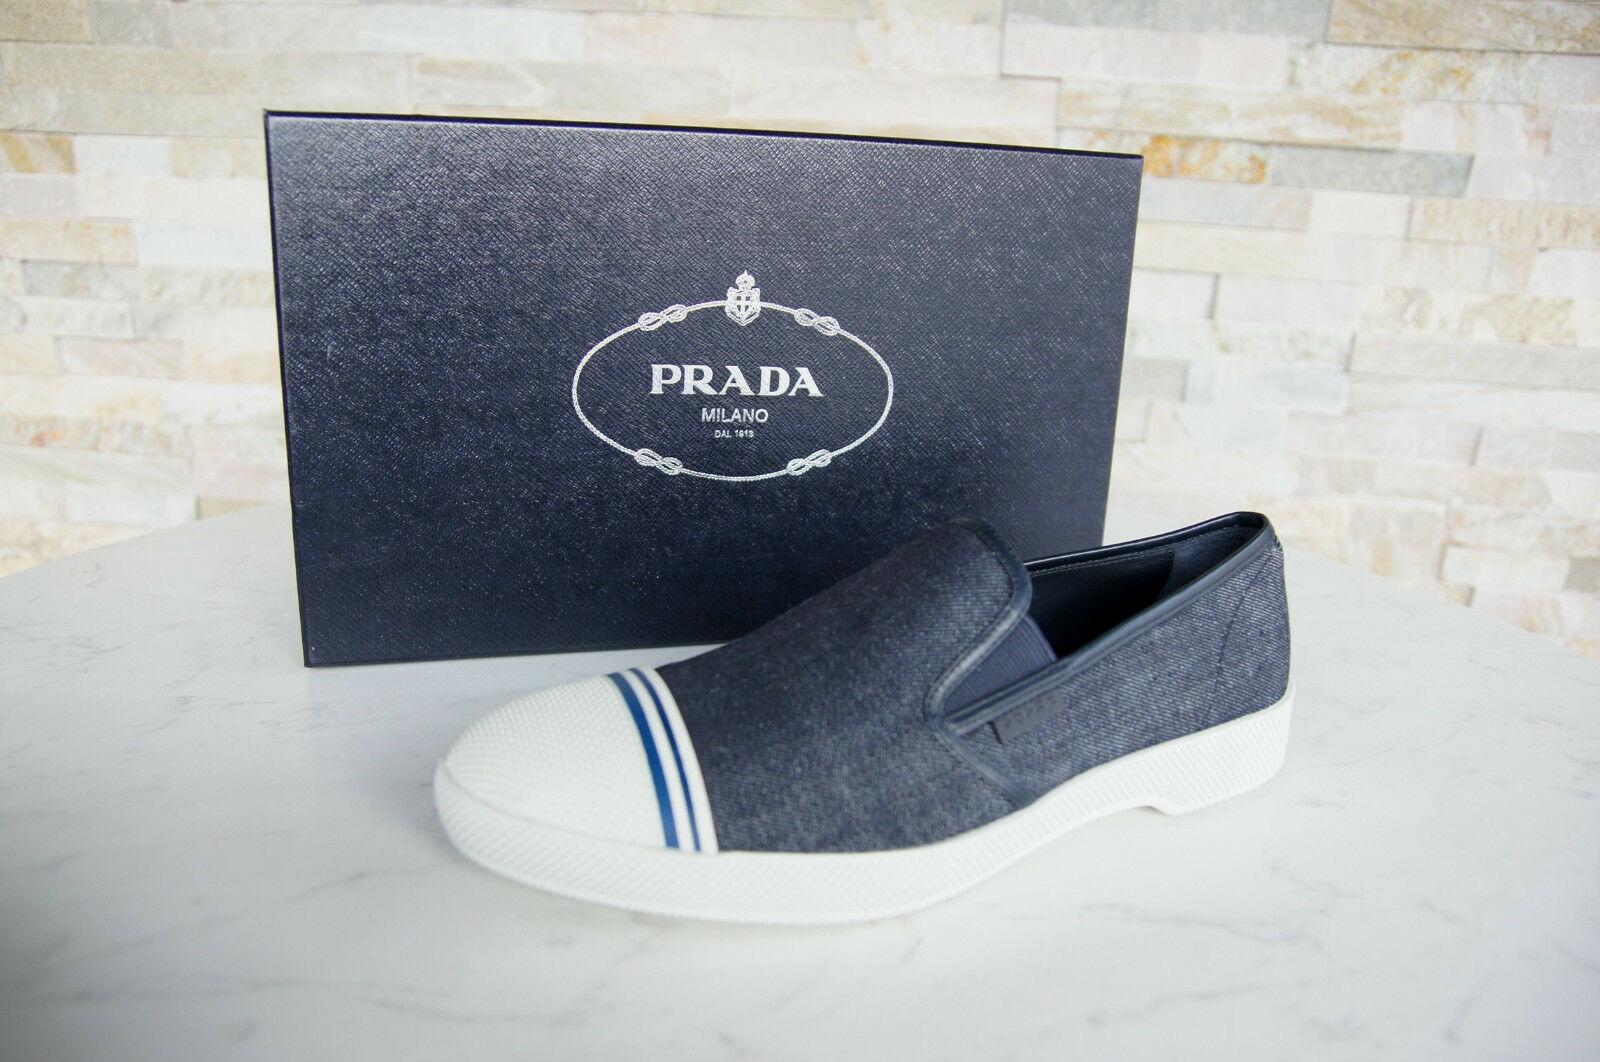 Prada 41,5 7,5 Slippers Loafers Moccasins Panties shoes Denim New Previously